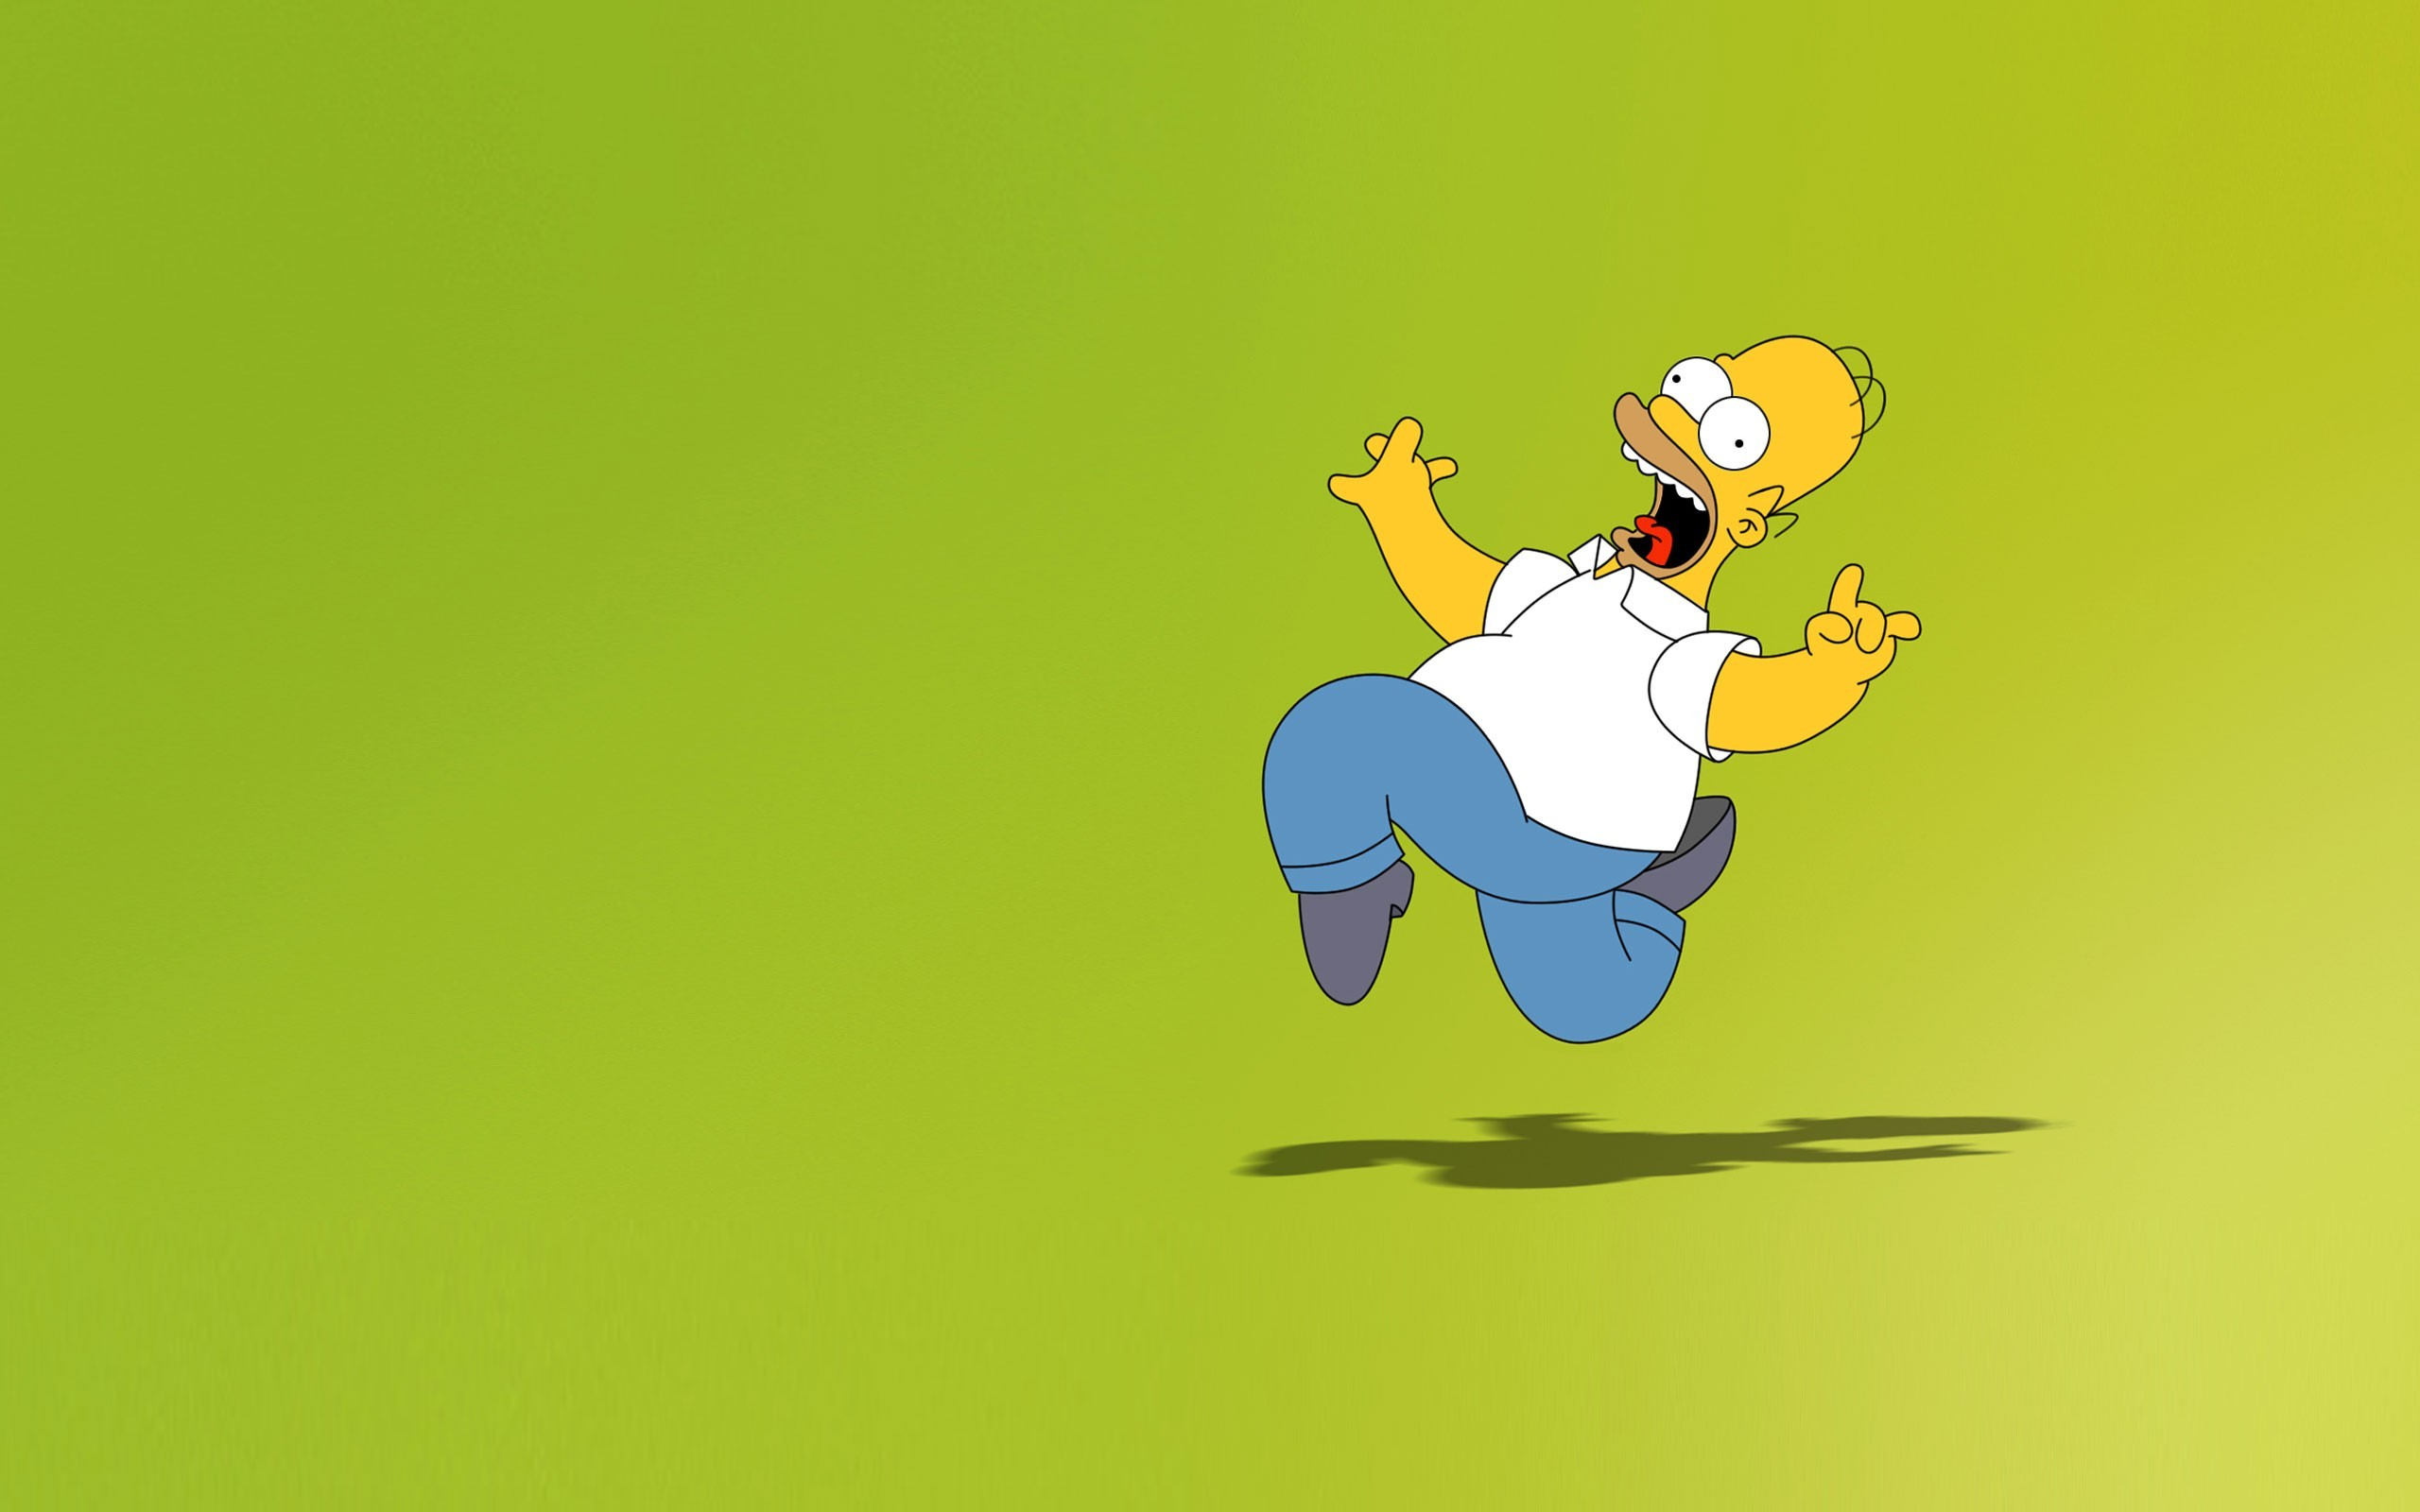 Homer Simpson wallpaper 15277 2560x1600